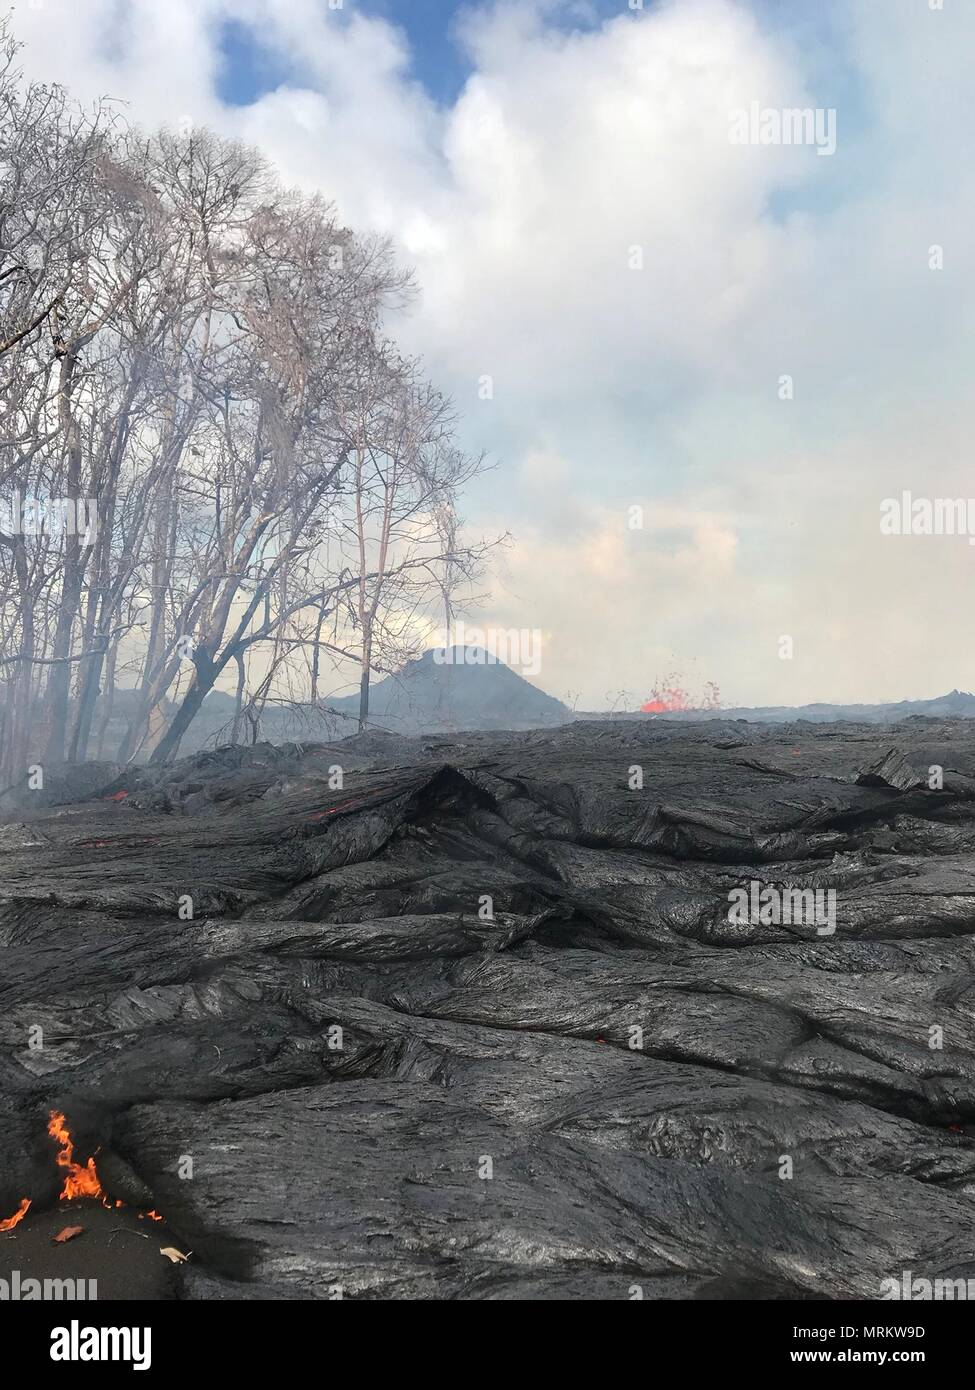 Lava continues to bubble up from fissures caused by the eruption of the Kilauea volcano May 24, 2018 in Pahoa, Hawaii. Stock Photo